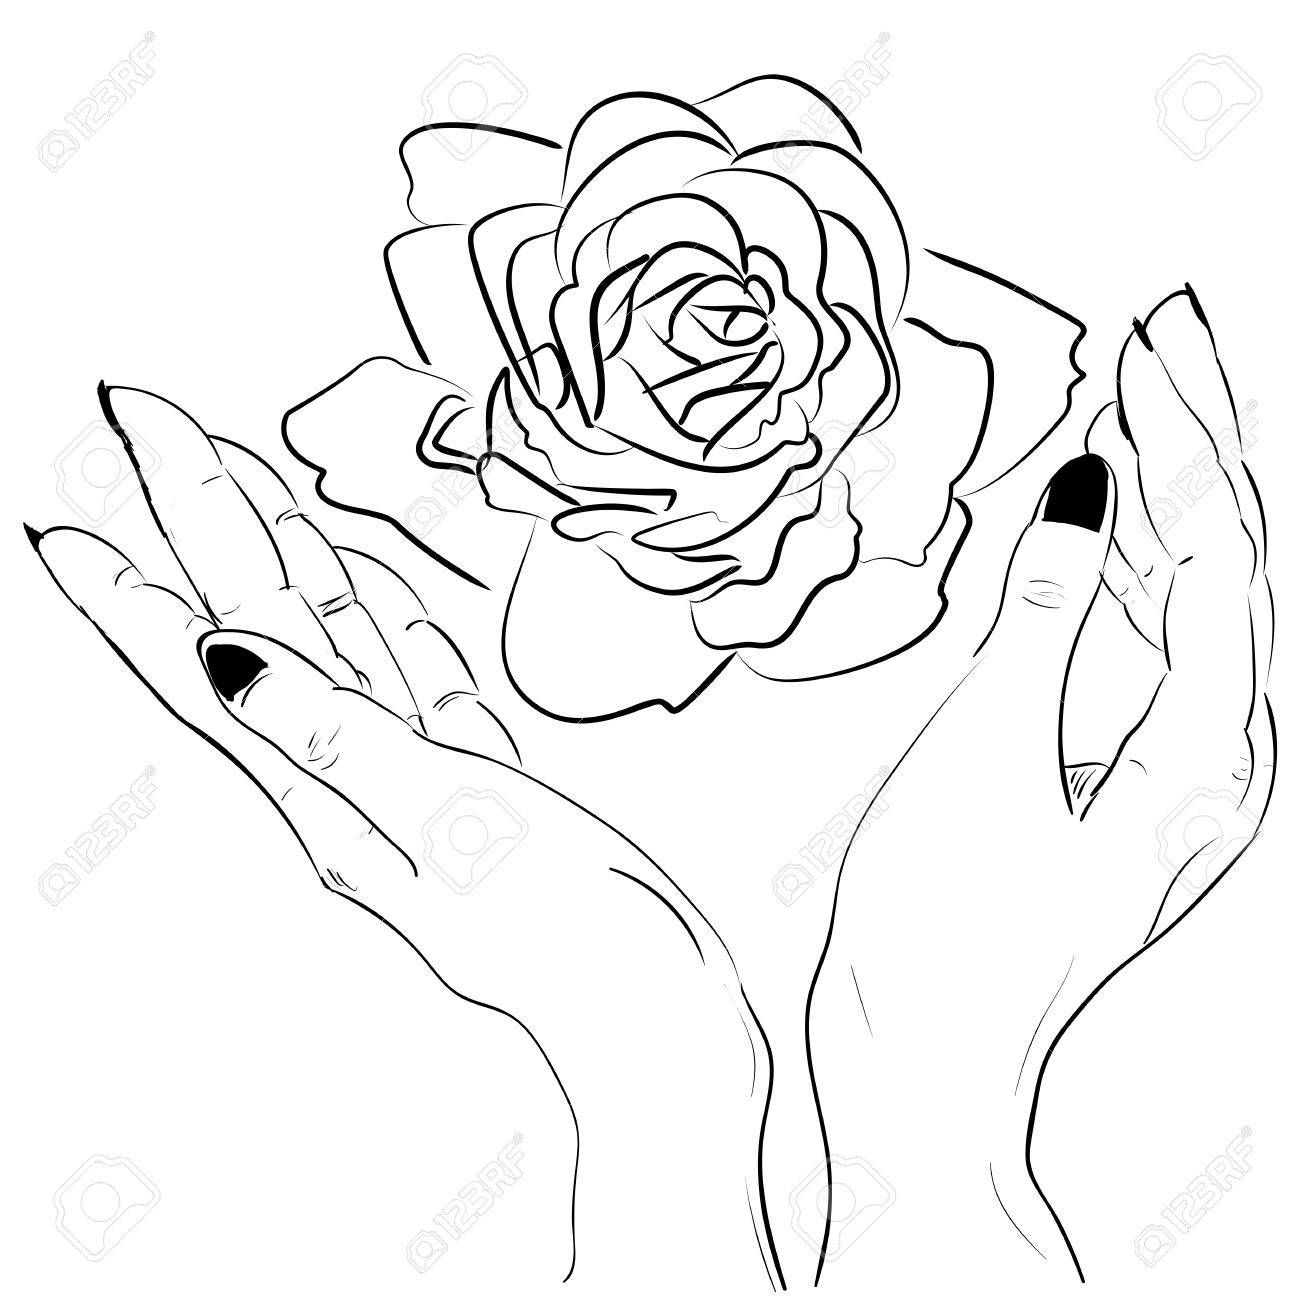 Hands Holding A Rose Flower Isolated Outline Hand Drawn Sketch Line Vector Illustration Illustration Af Flower Drawing How To Draw Hands Minimalist Flowers